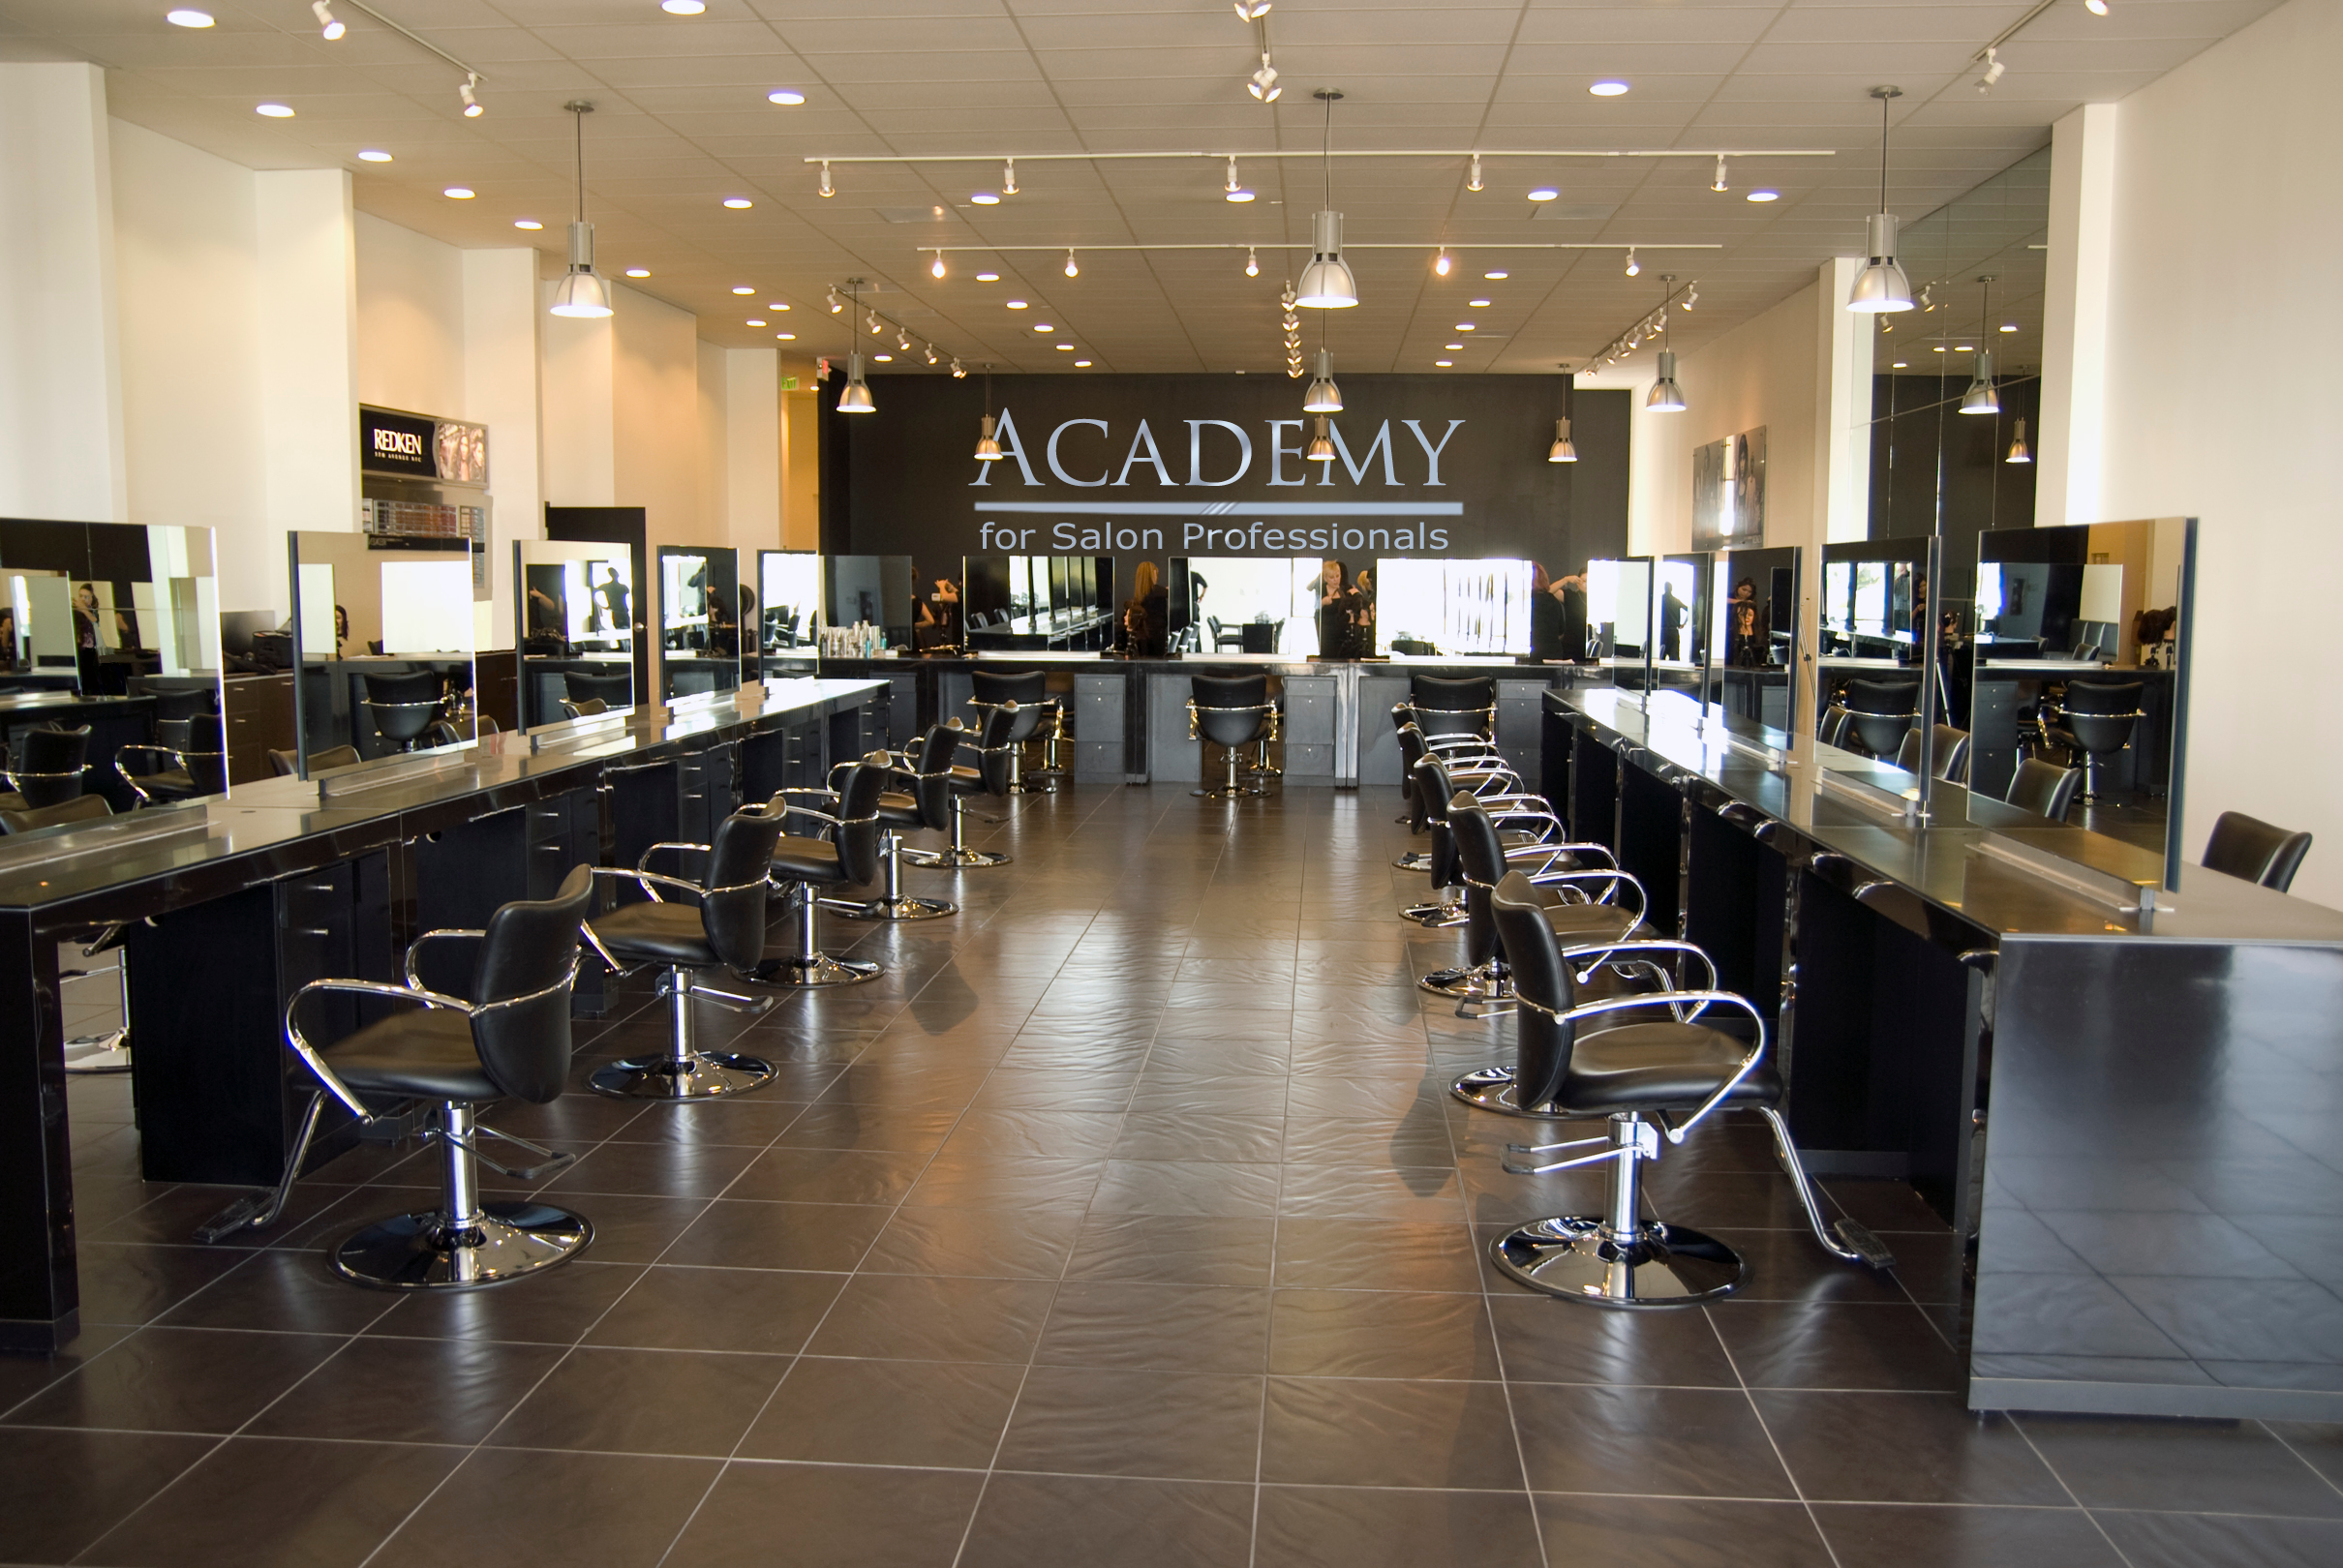 academy for salon professionals member santa clara ca